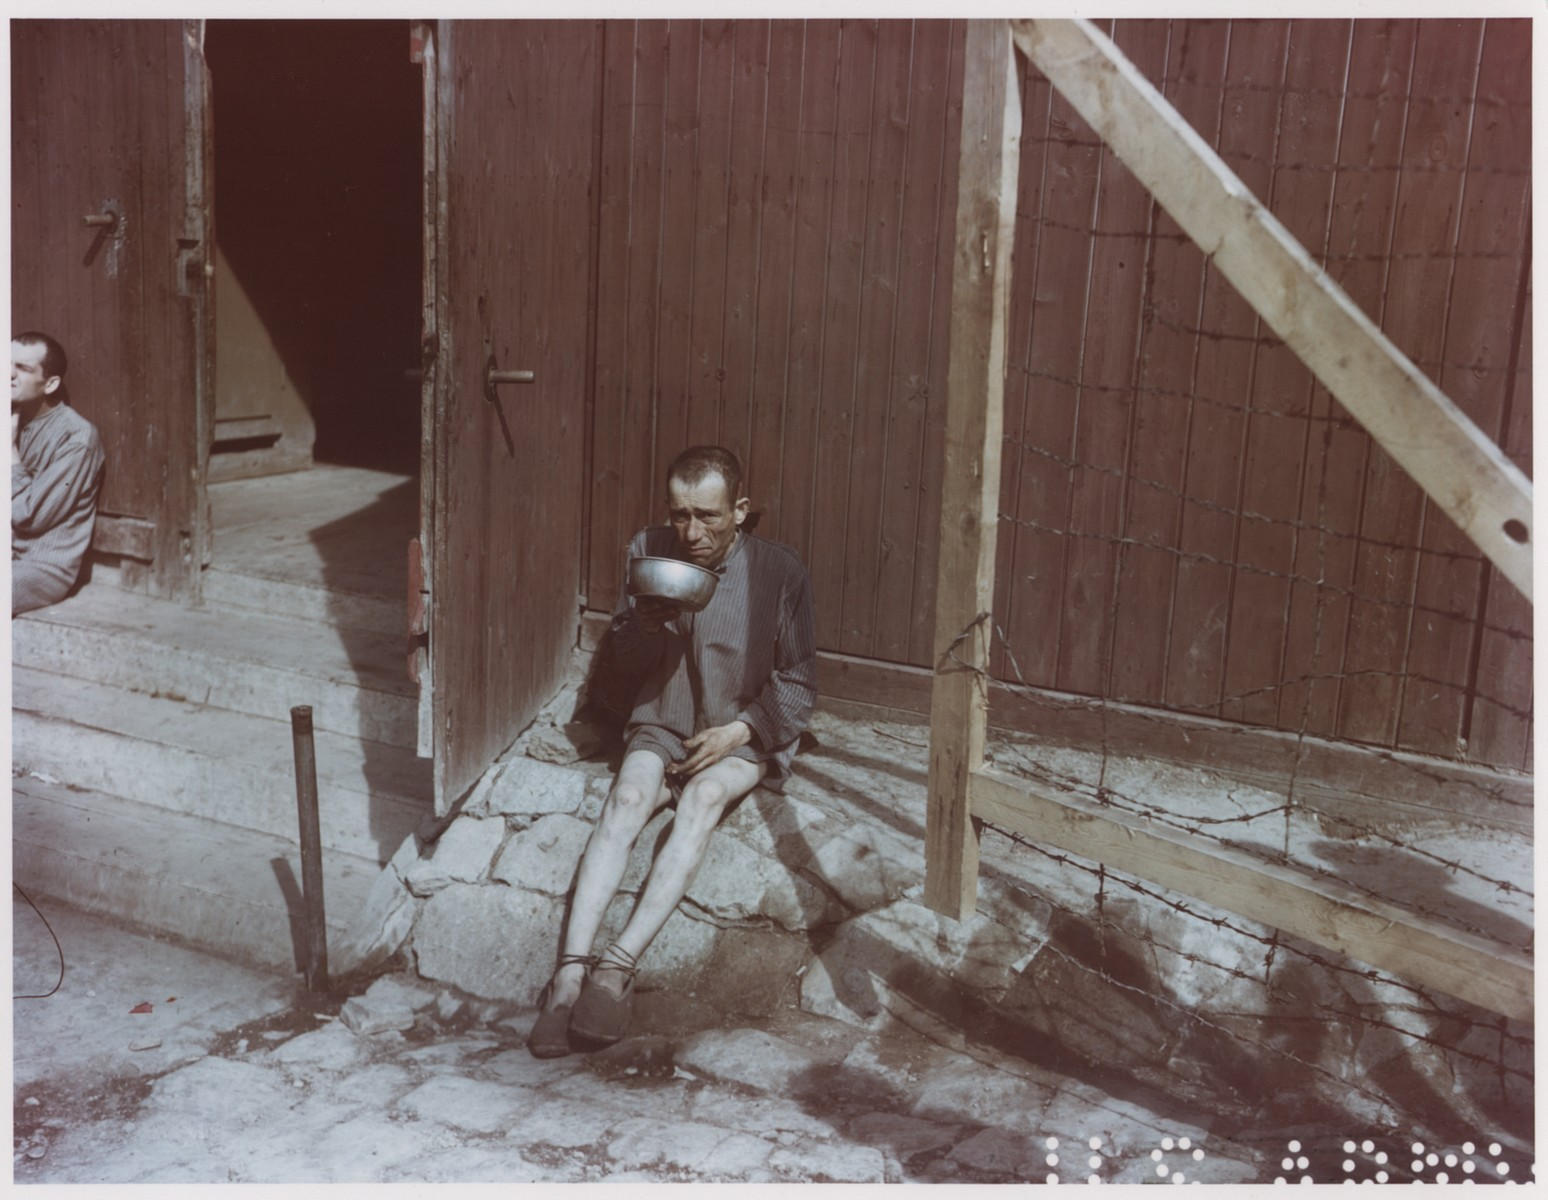 An emaciated survivor drinking from a metal bowl in front of a barracks in Buchenwald.